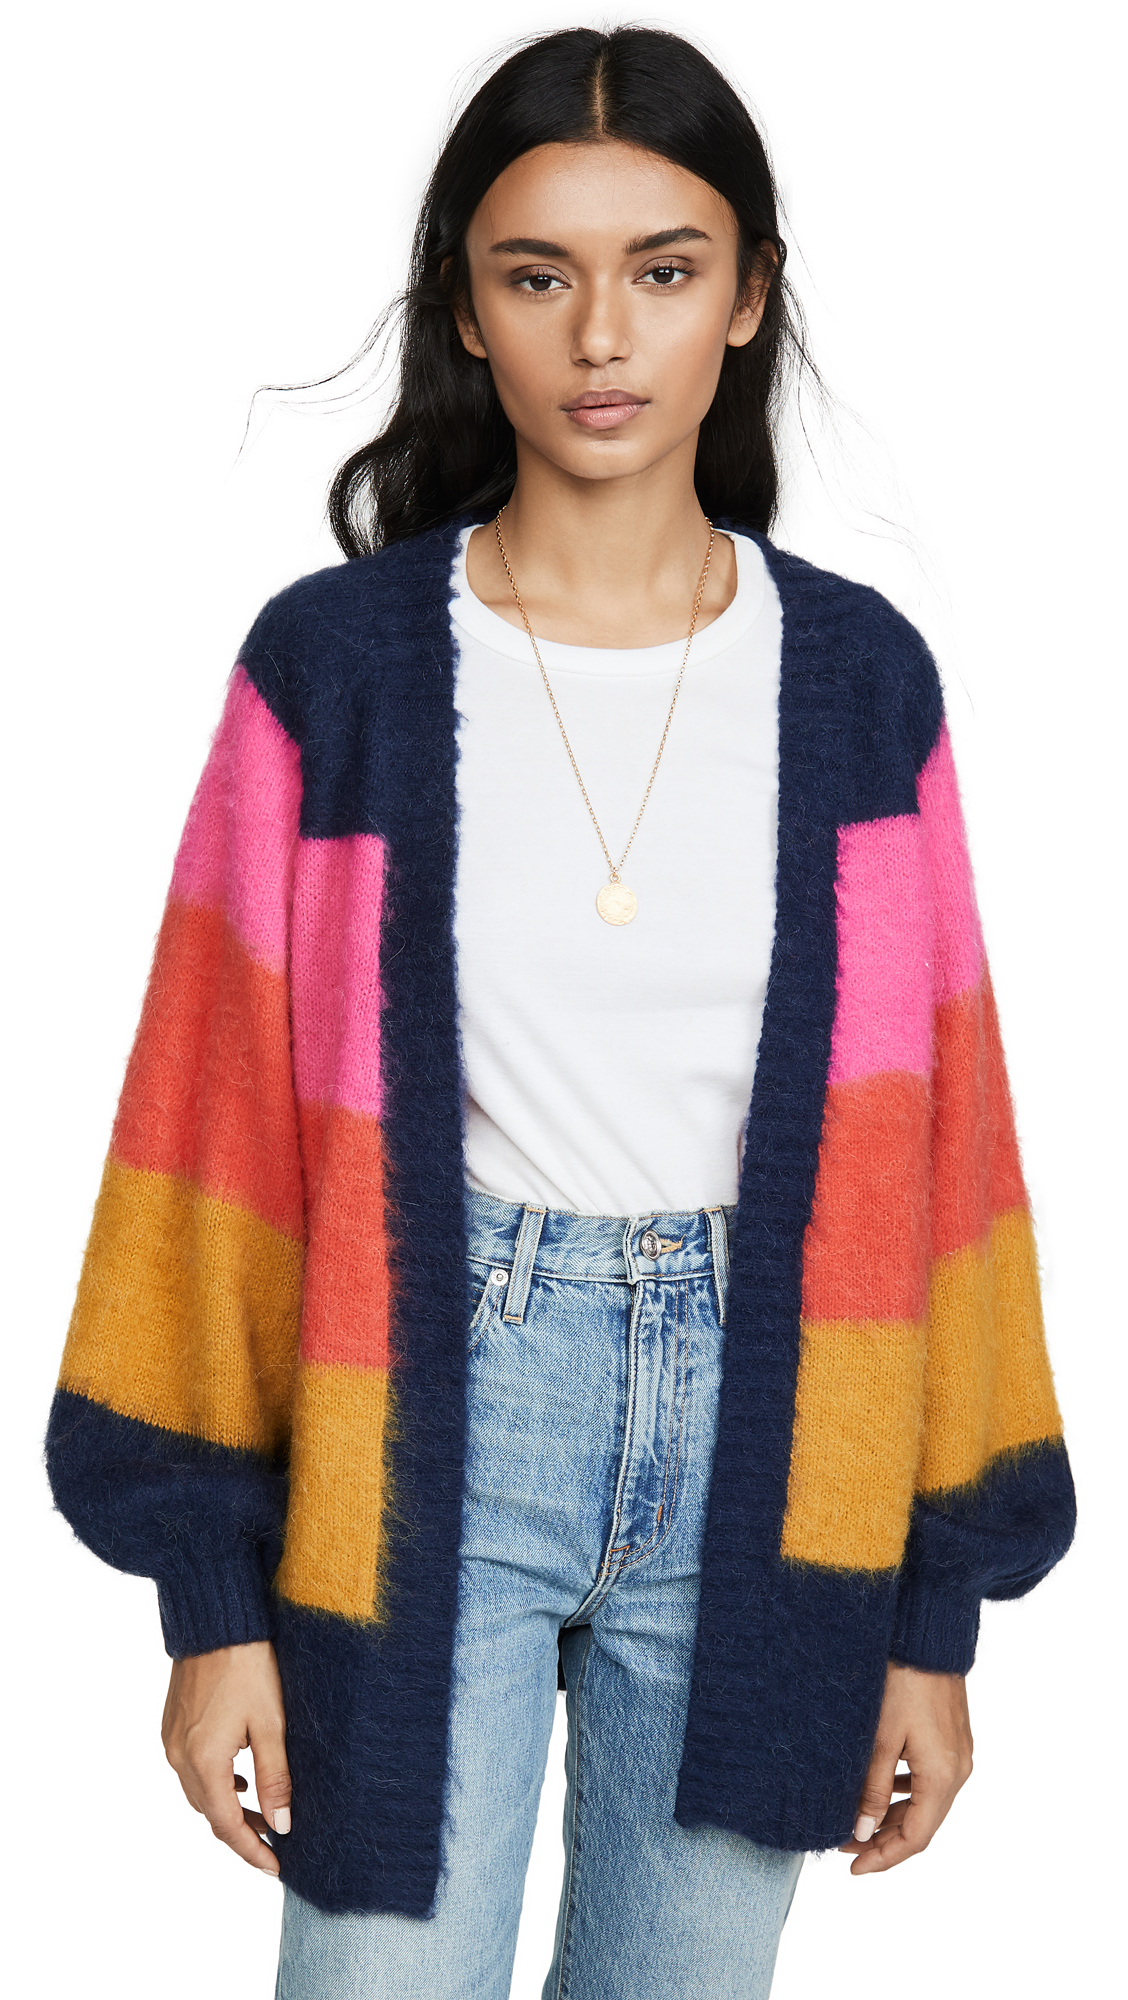 Buy Scotch & Soda/Maison Scotch online - photo of Scotch & Soda/Maison Scotch Brushed Colorful Striped Cardigan